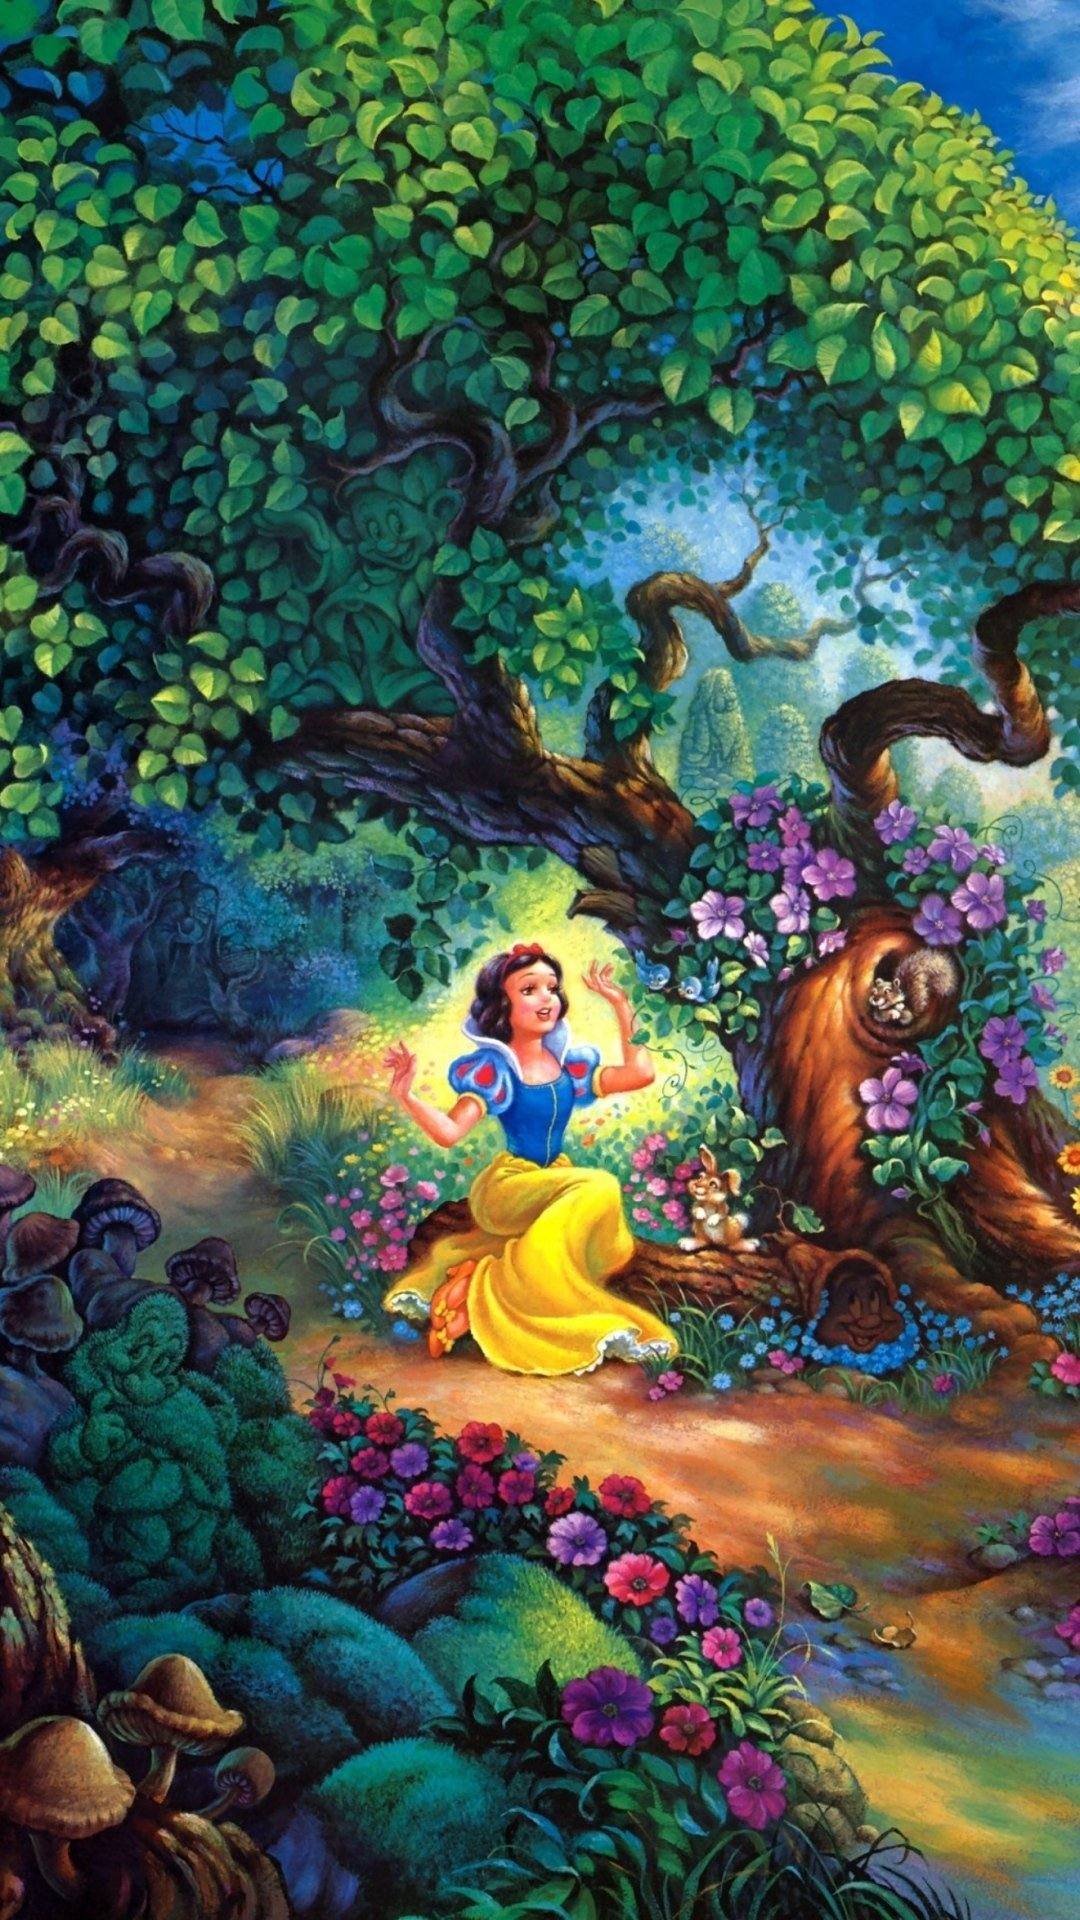 Disney Wallpapers For Iphone 6 Disney wallpap 1080x1920